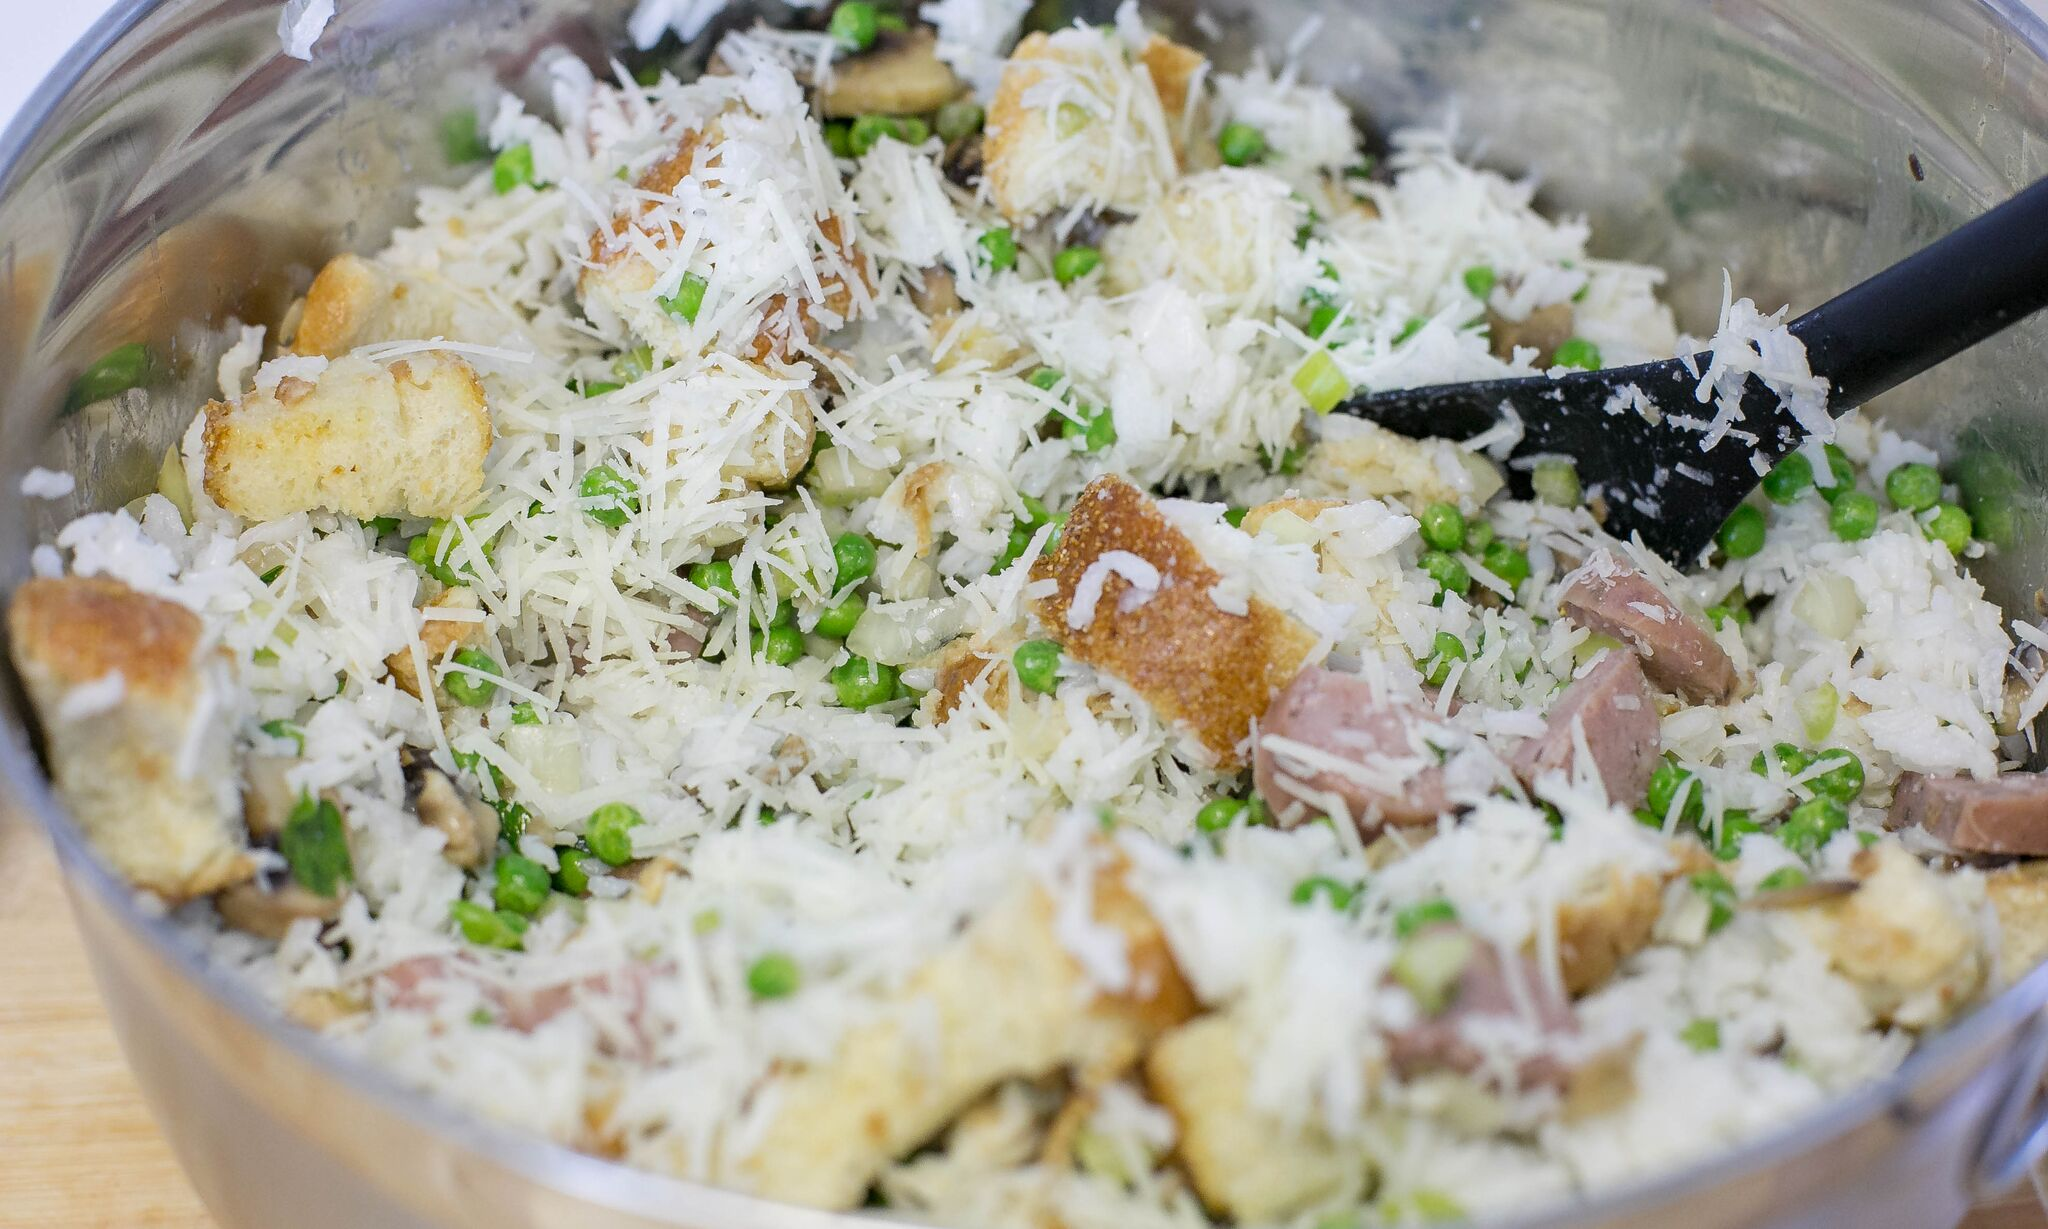 Add cooked rice and one cup of grated Pecronio Romano to vegetable and bread mixture.